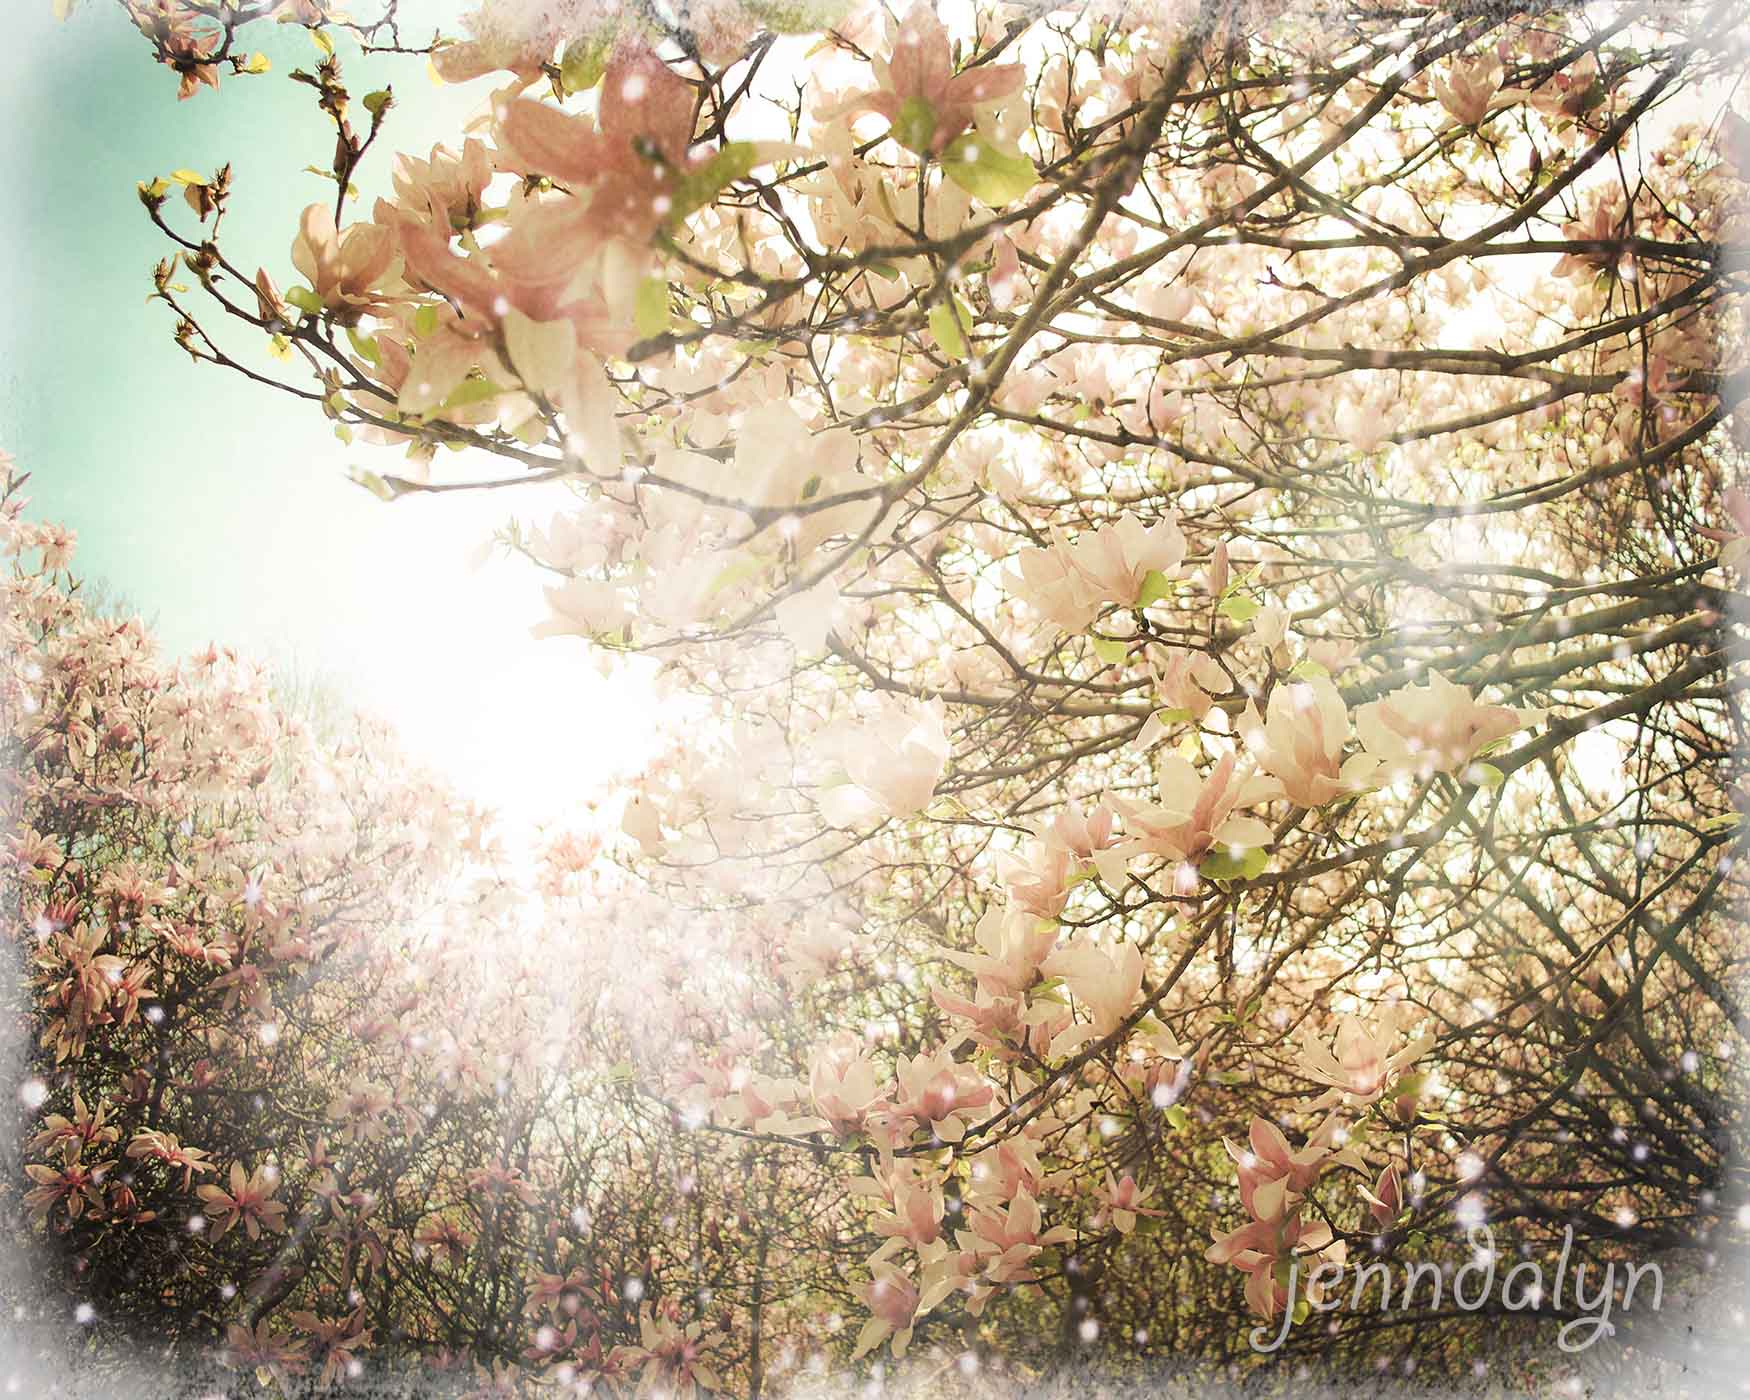 In Bloom 8 X 10 Fine Art Photograph Spring Landscape Photography Magnolia Tree Magnolias Pastels Romantic For Her Jenndalyn Art Online Store Powered By Storenvy